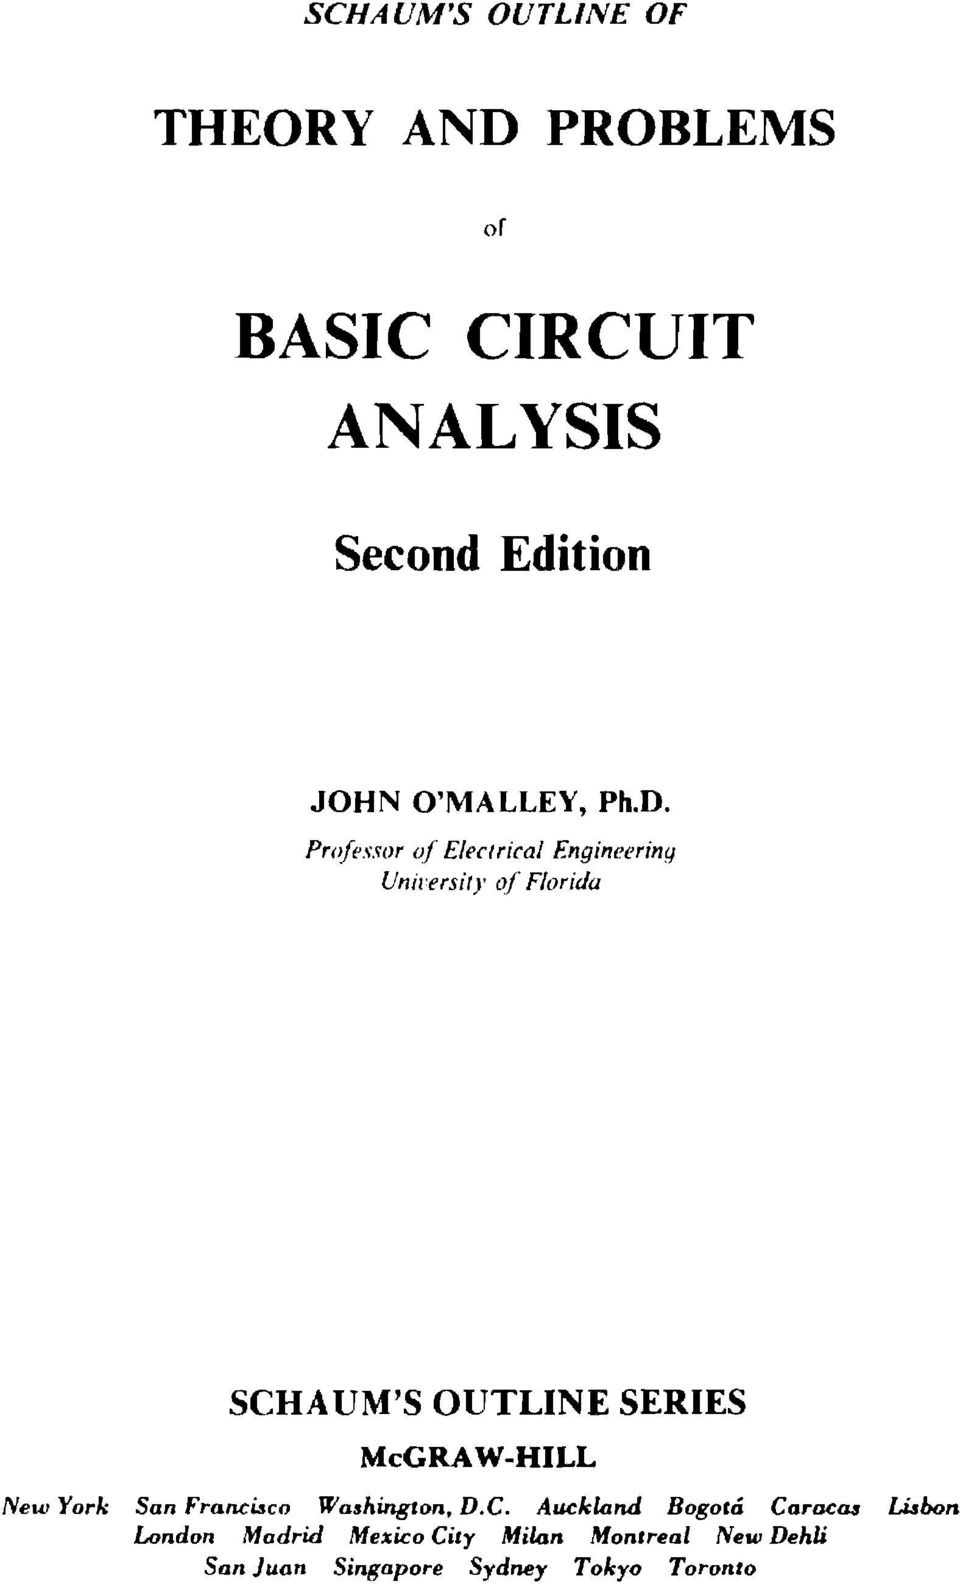 Basic Circuit Analysis Pdf Voltage Controlled Resistor Equivalent Model Basiccircuit Professor Of Electrical Engineering University Florida Schaum S Outline Series